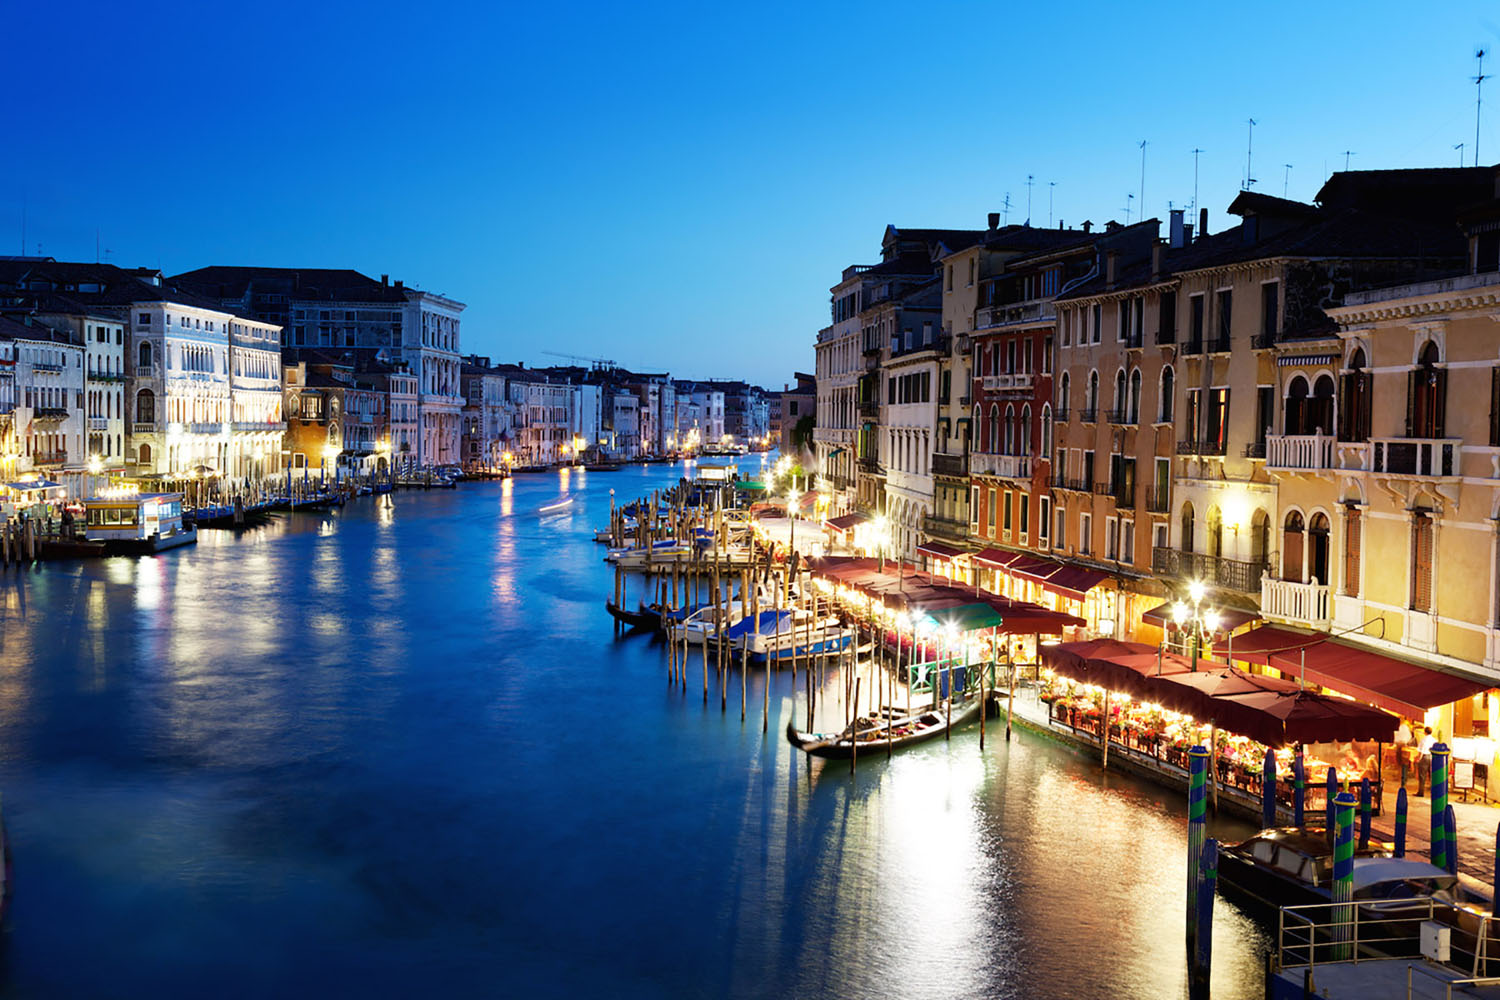 A romantic canal filled with gondolas at night in Venice, Italy.